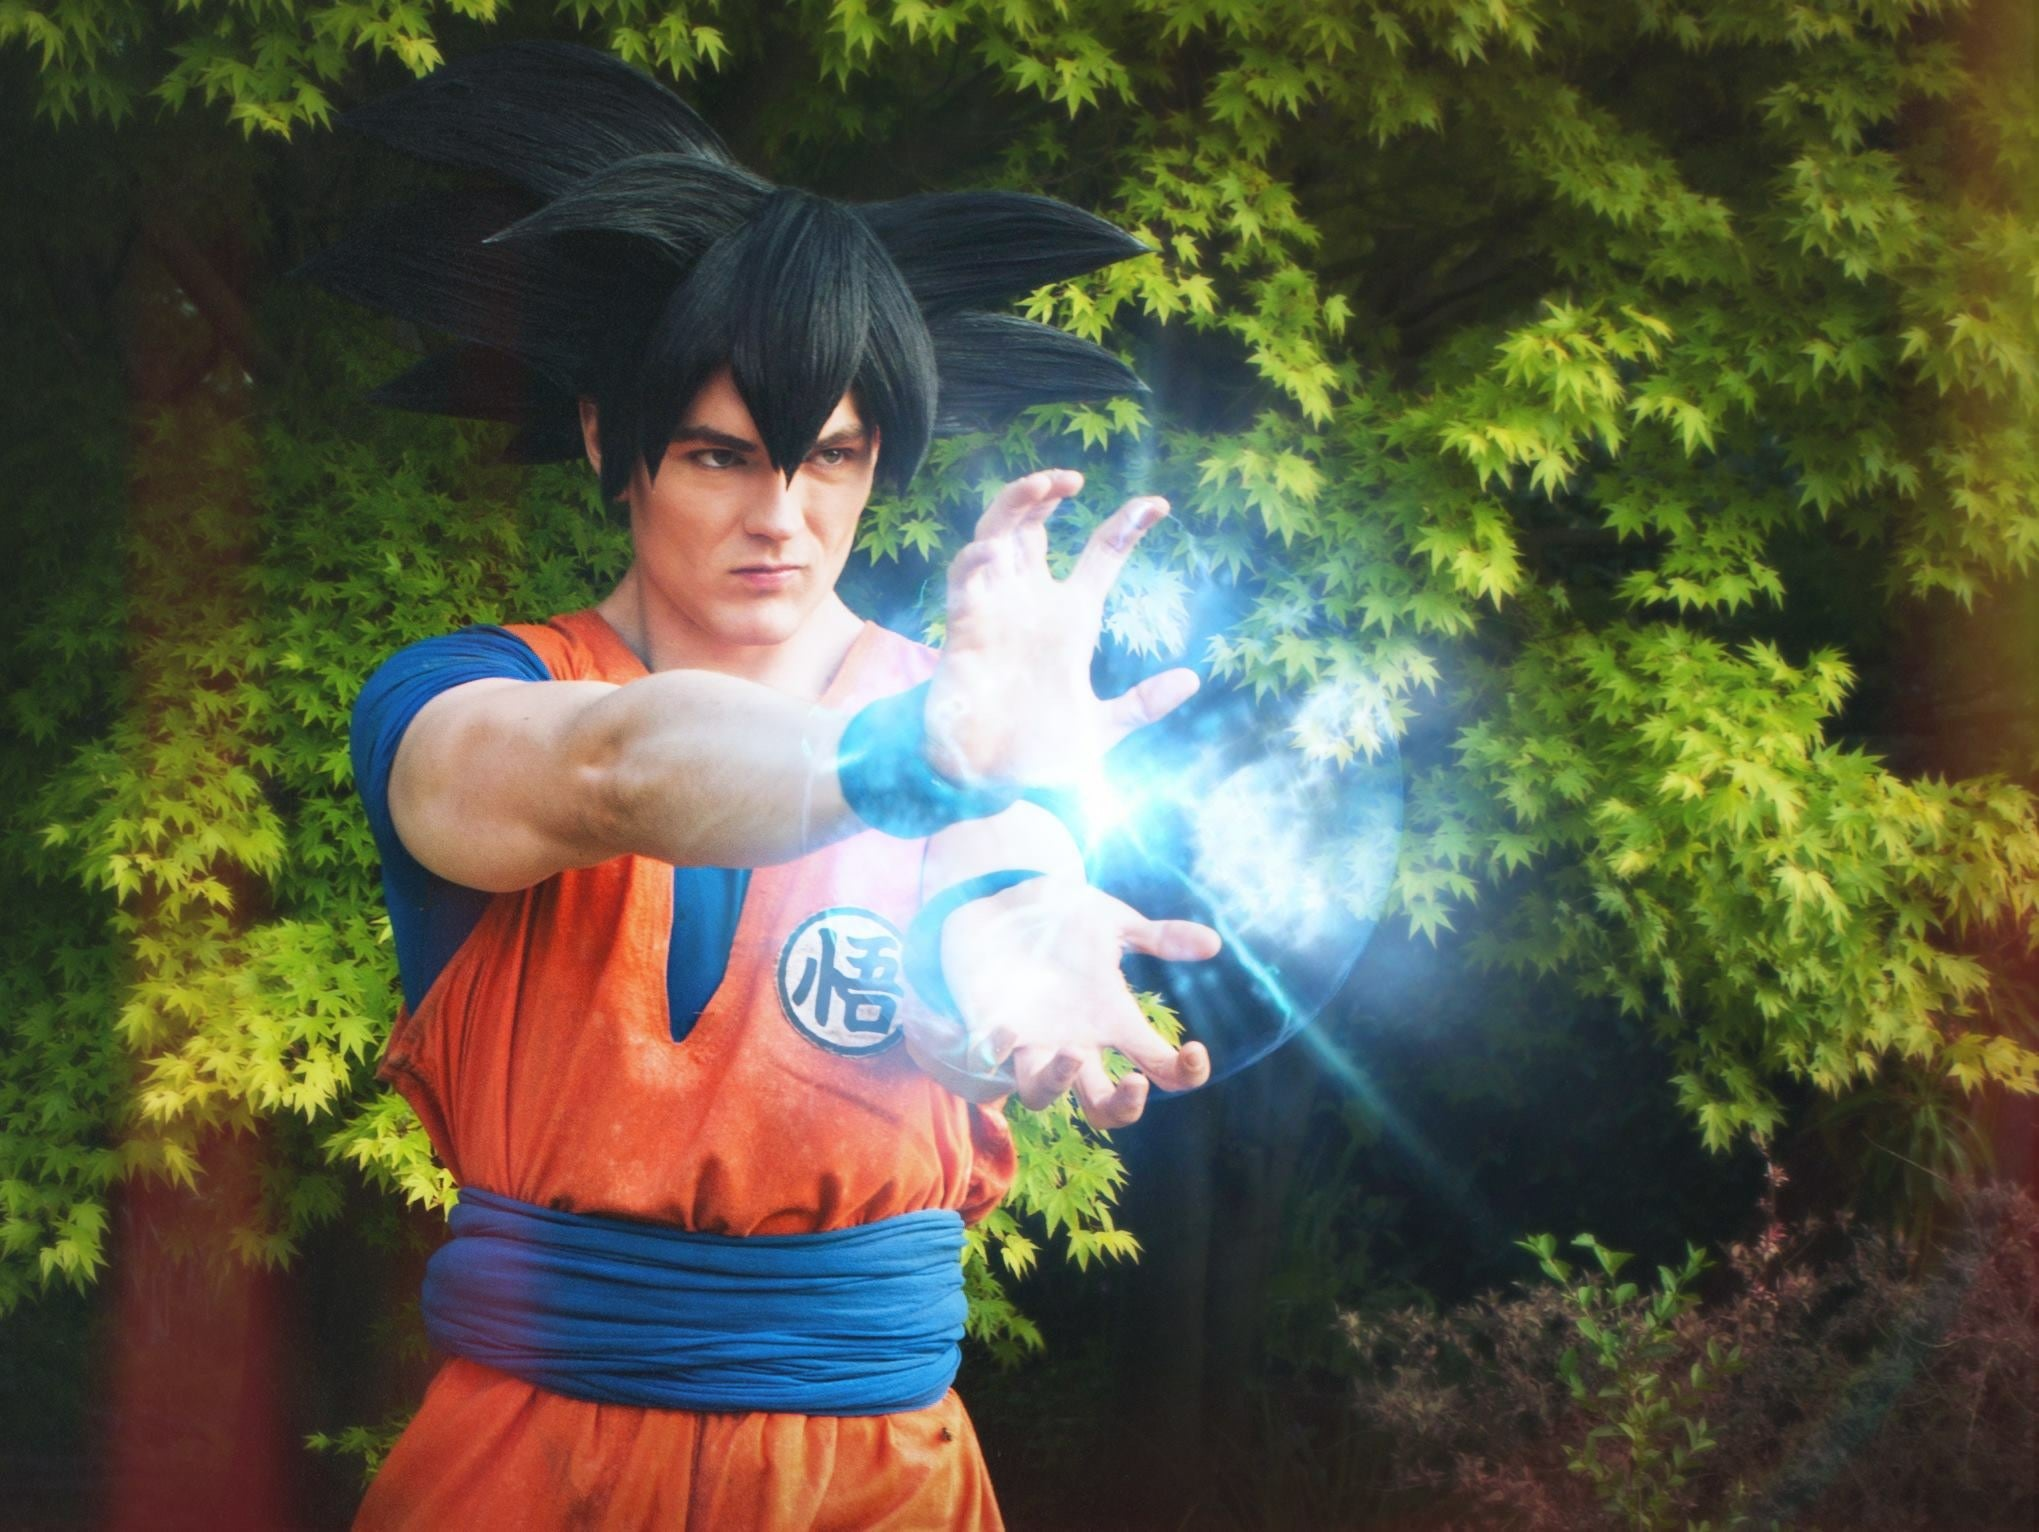 Goku cosplayer who used his admiration for the DragonBall character to overcome his eating disorder